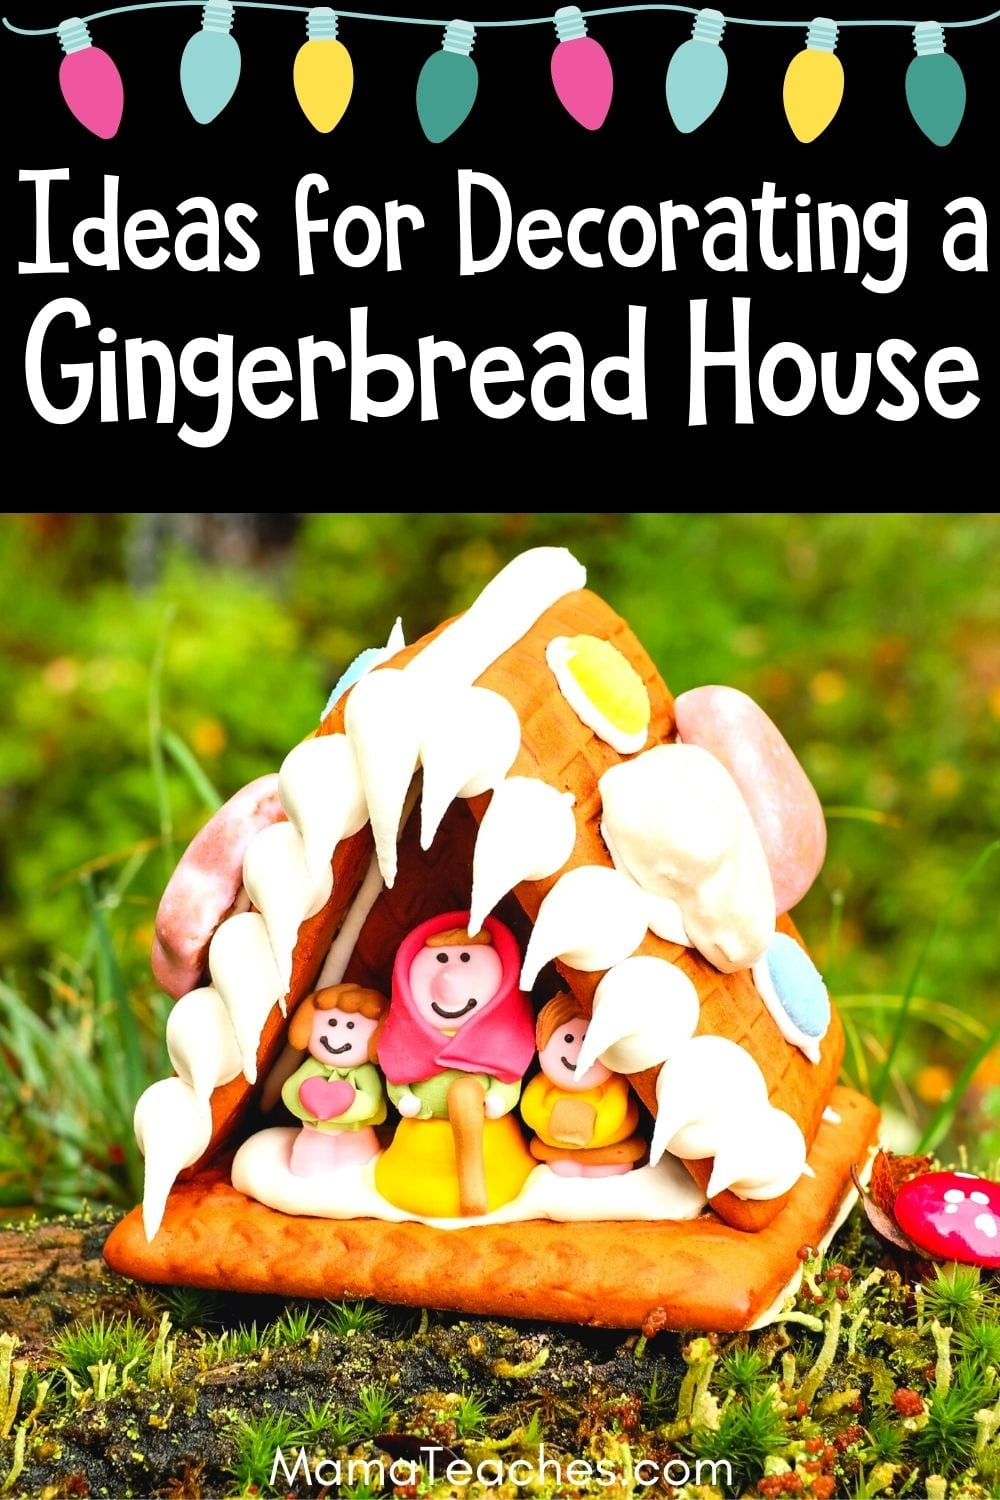 Ideas for Decorating a Gingerbread House